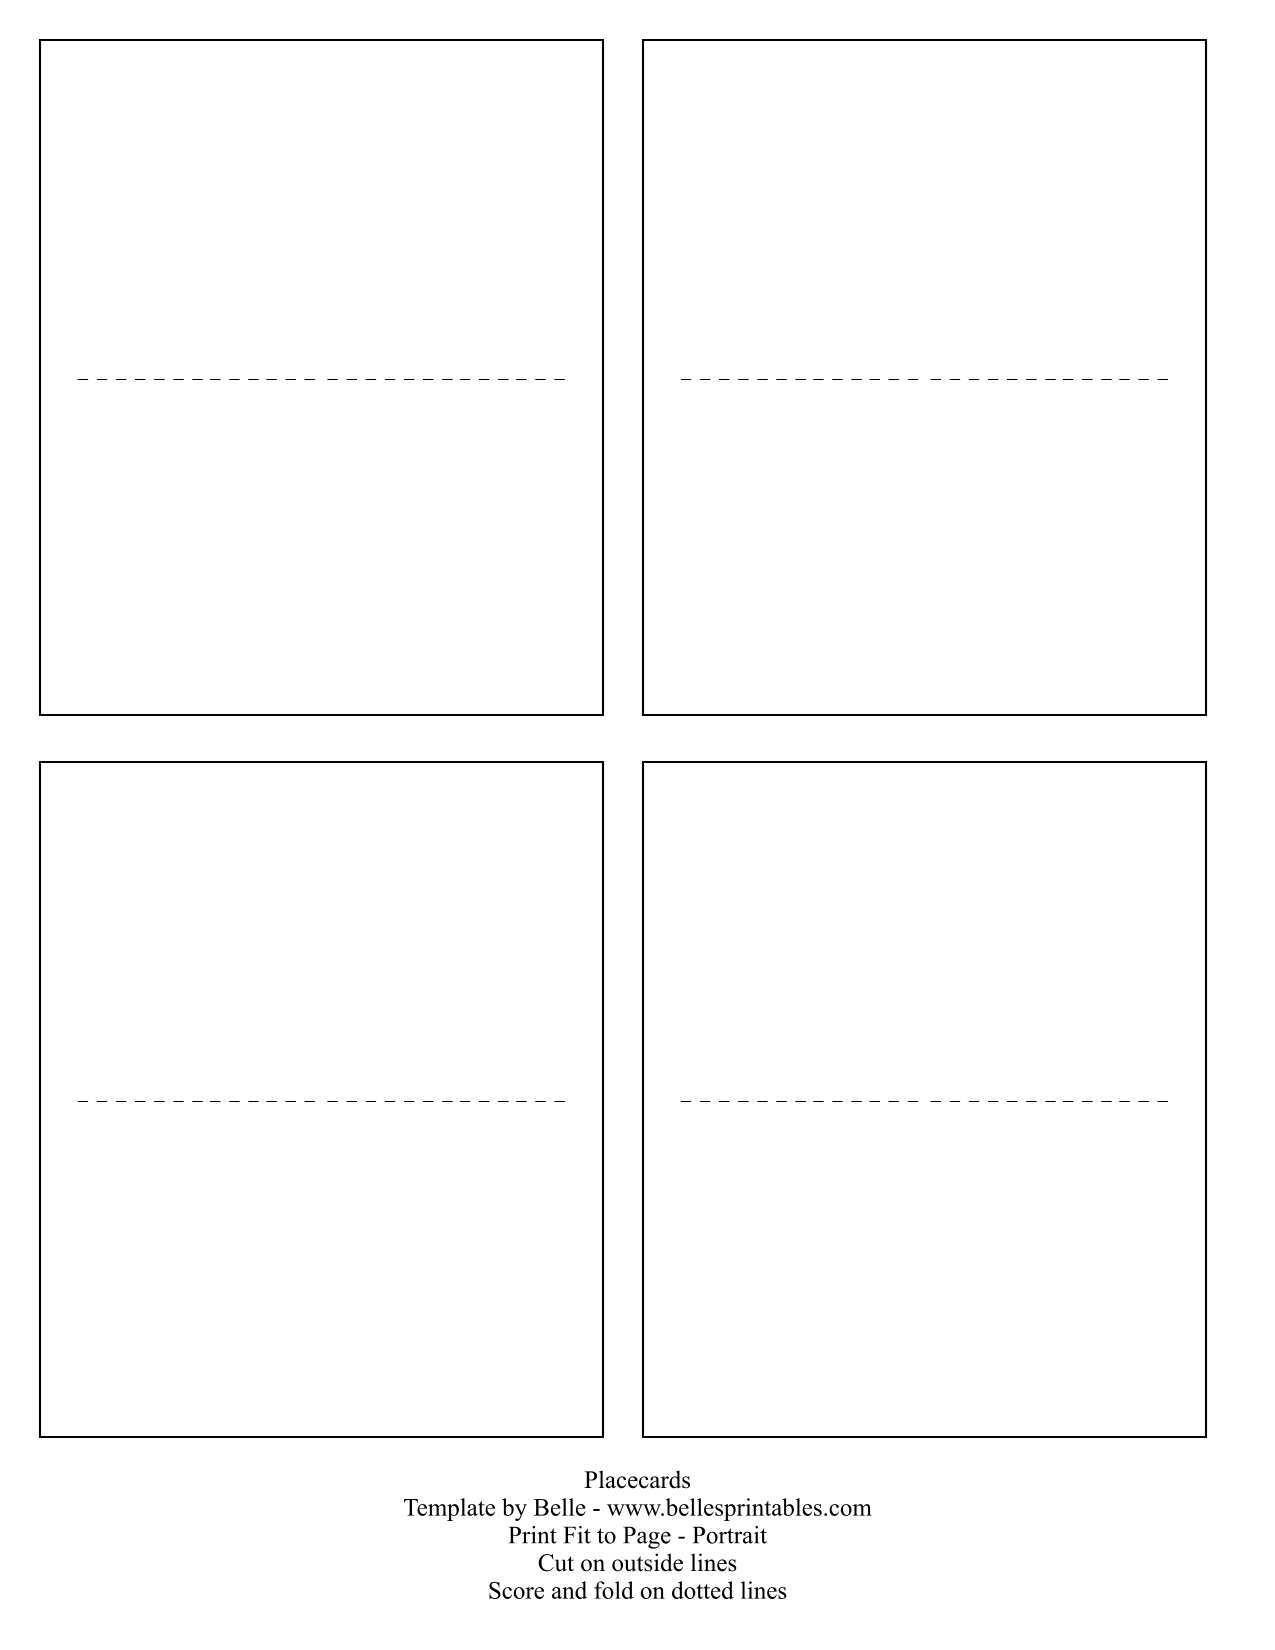 Foldable Card Template from legaldbol.com